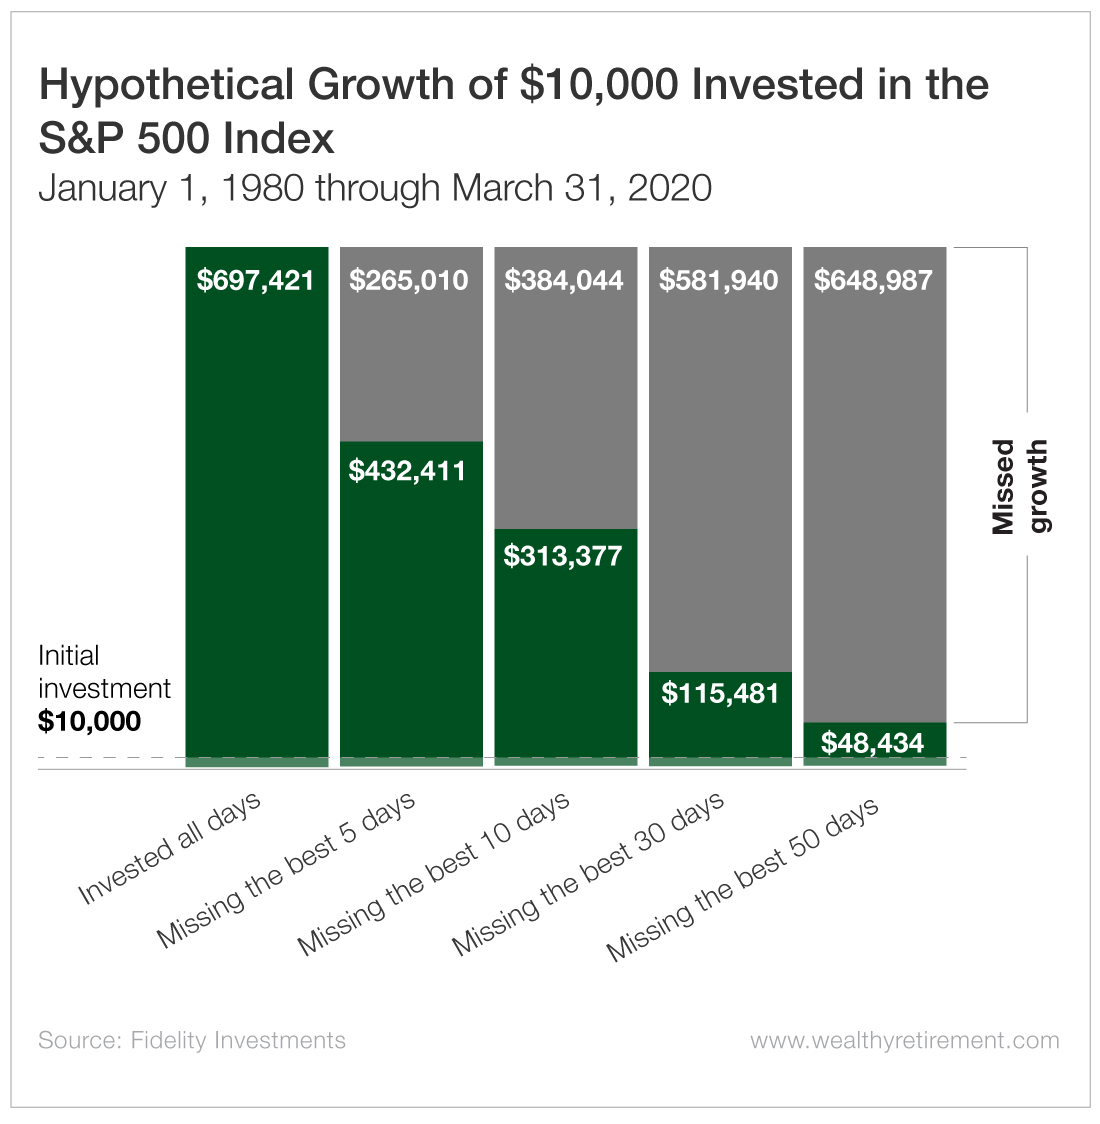 Hypothetical Growth of $10,000 Invested in the S&P 500 Index